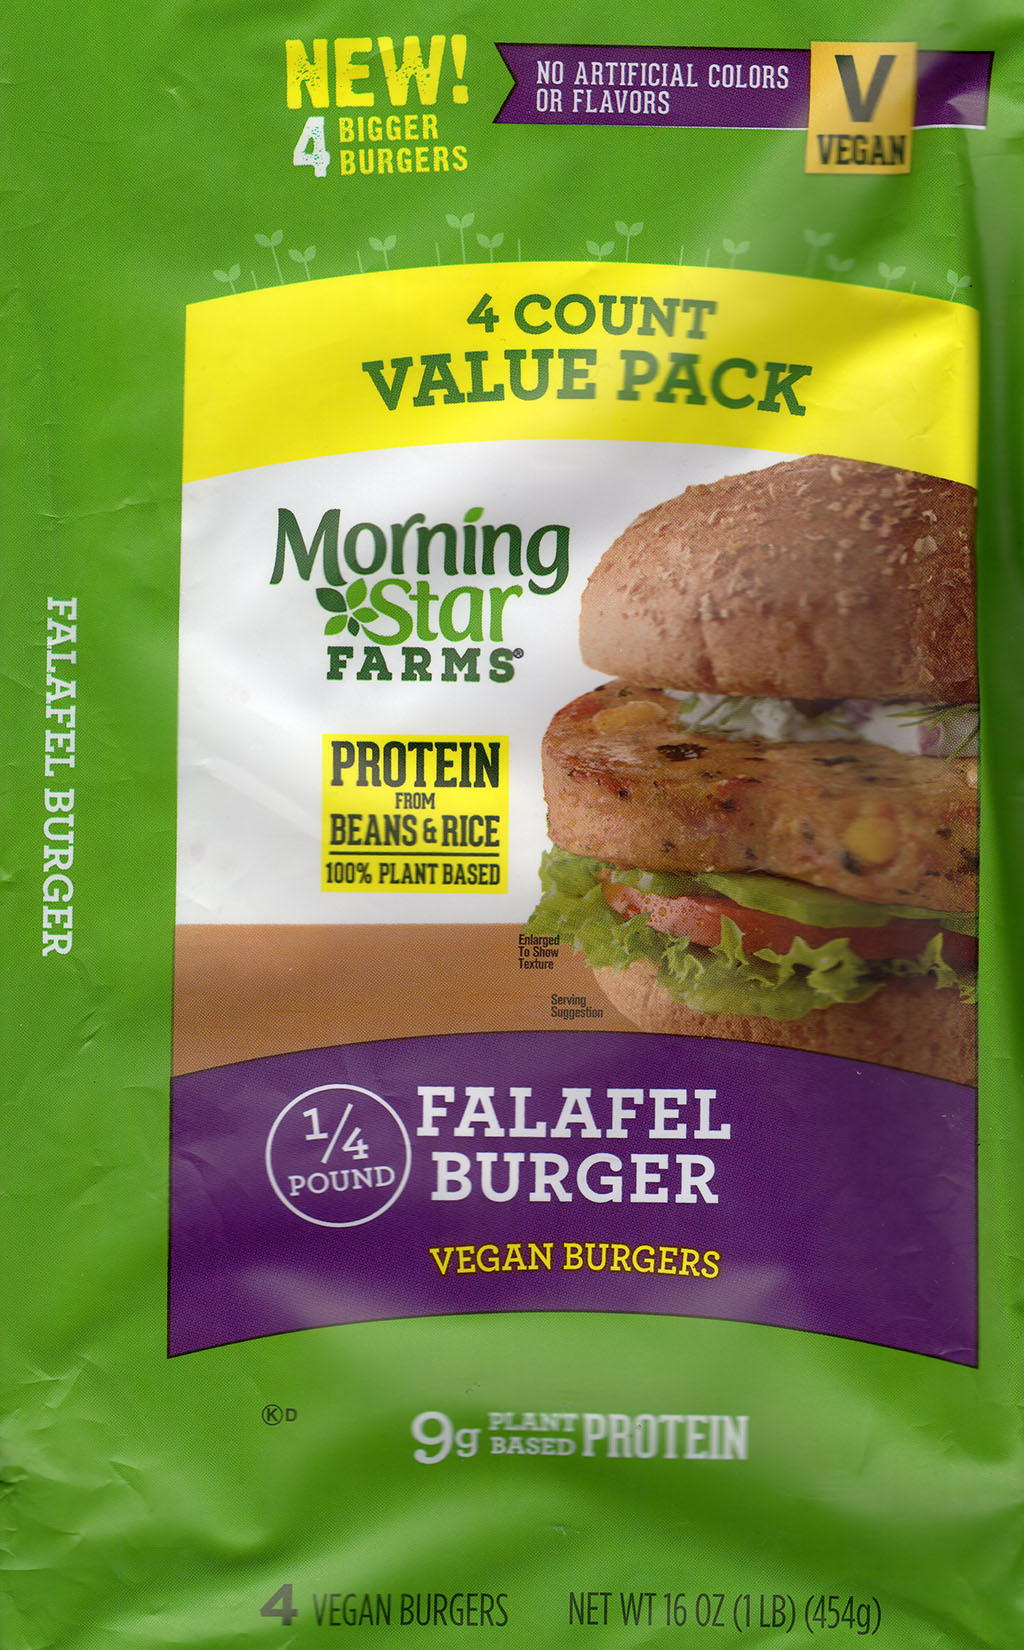 MorningStar Farms Falafel Burger paclakge front